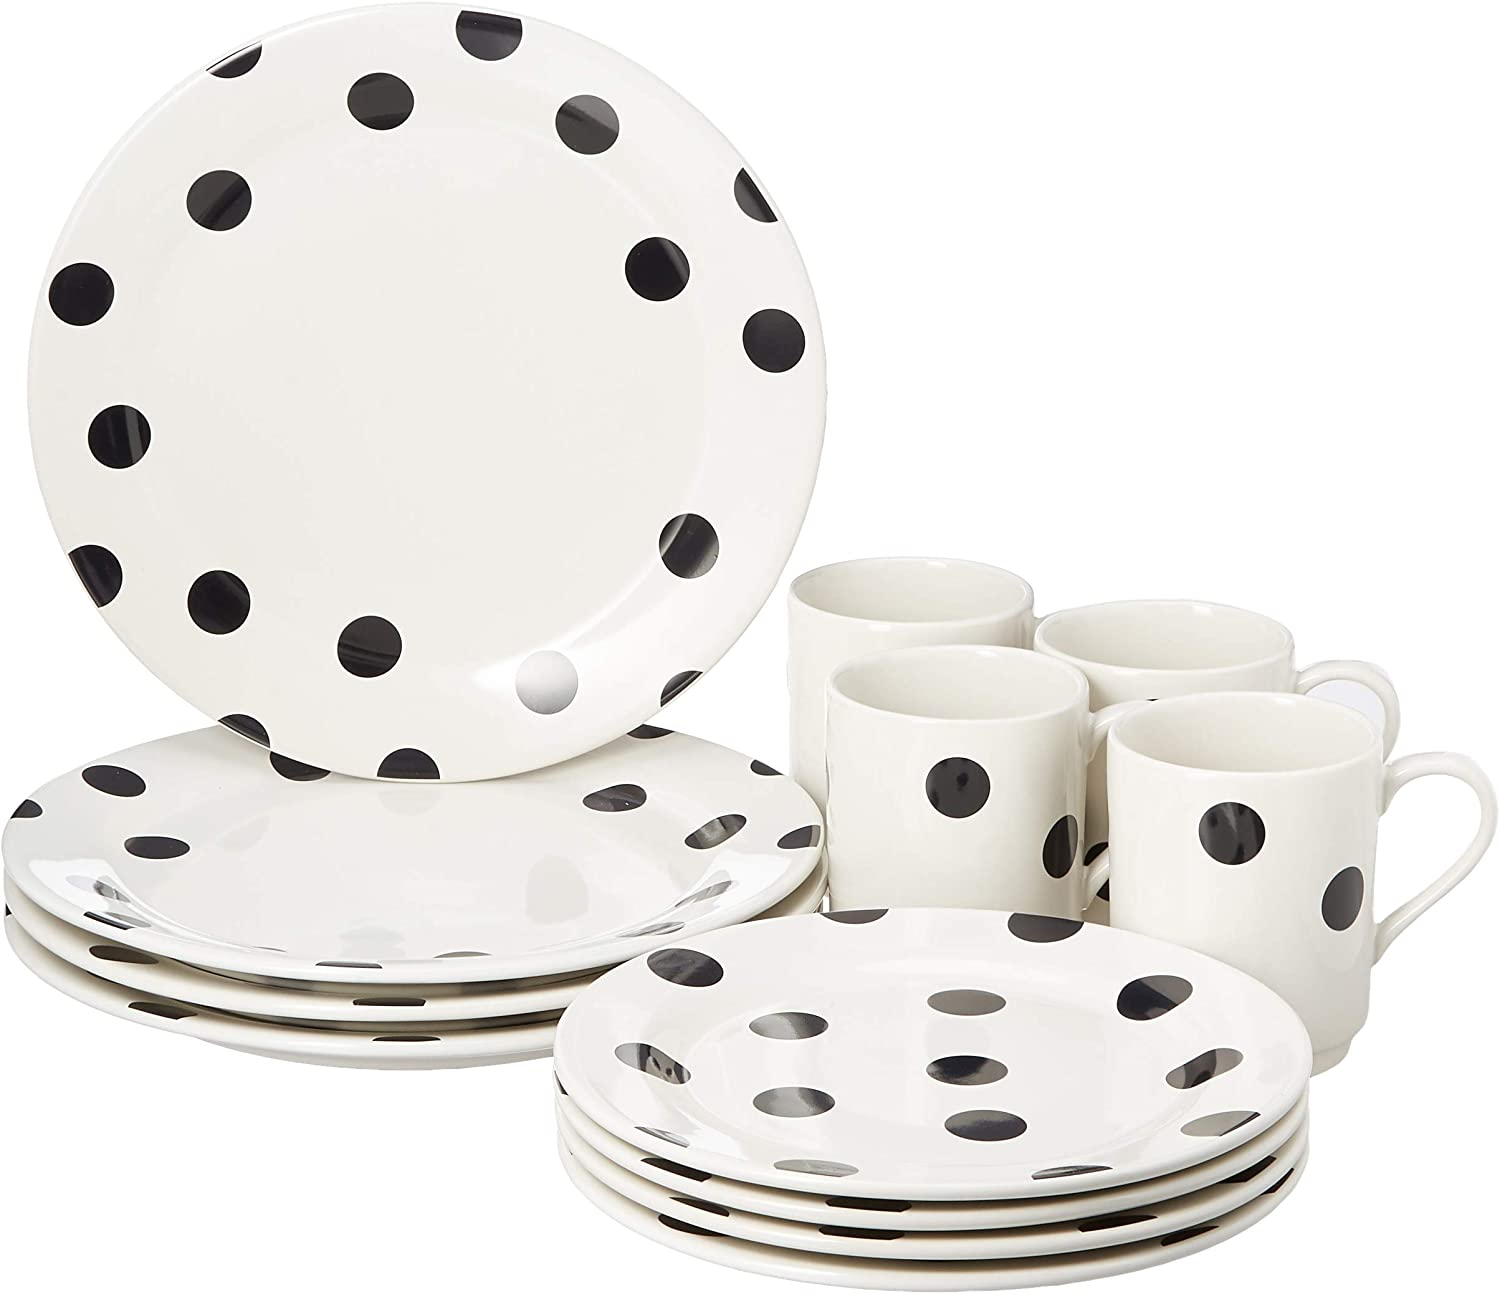 KATE SPADE Deco Dot 12-Piece Dinnerware Set, 18.3 LB, White